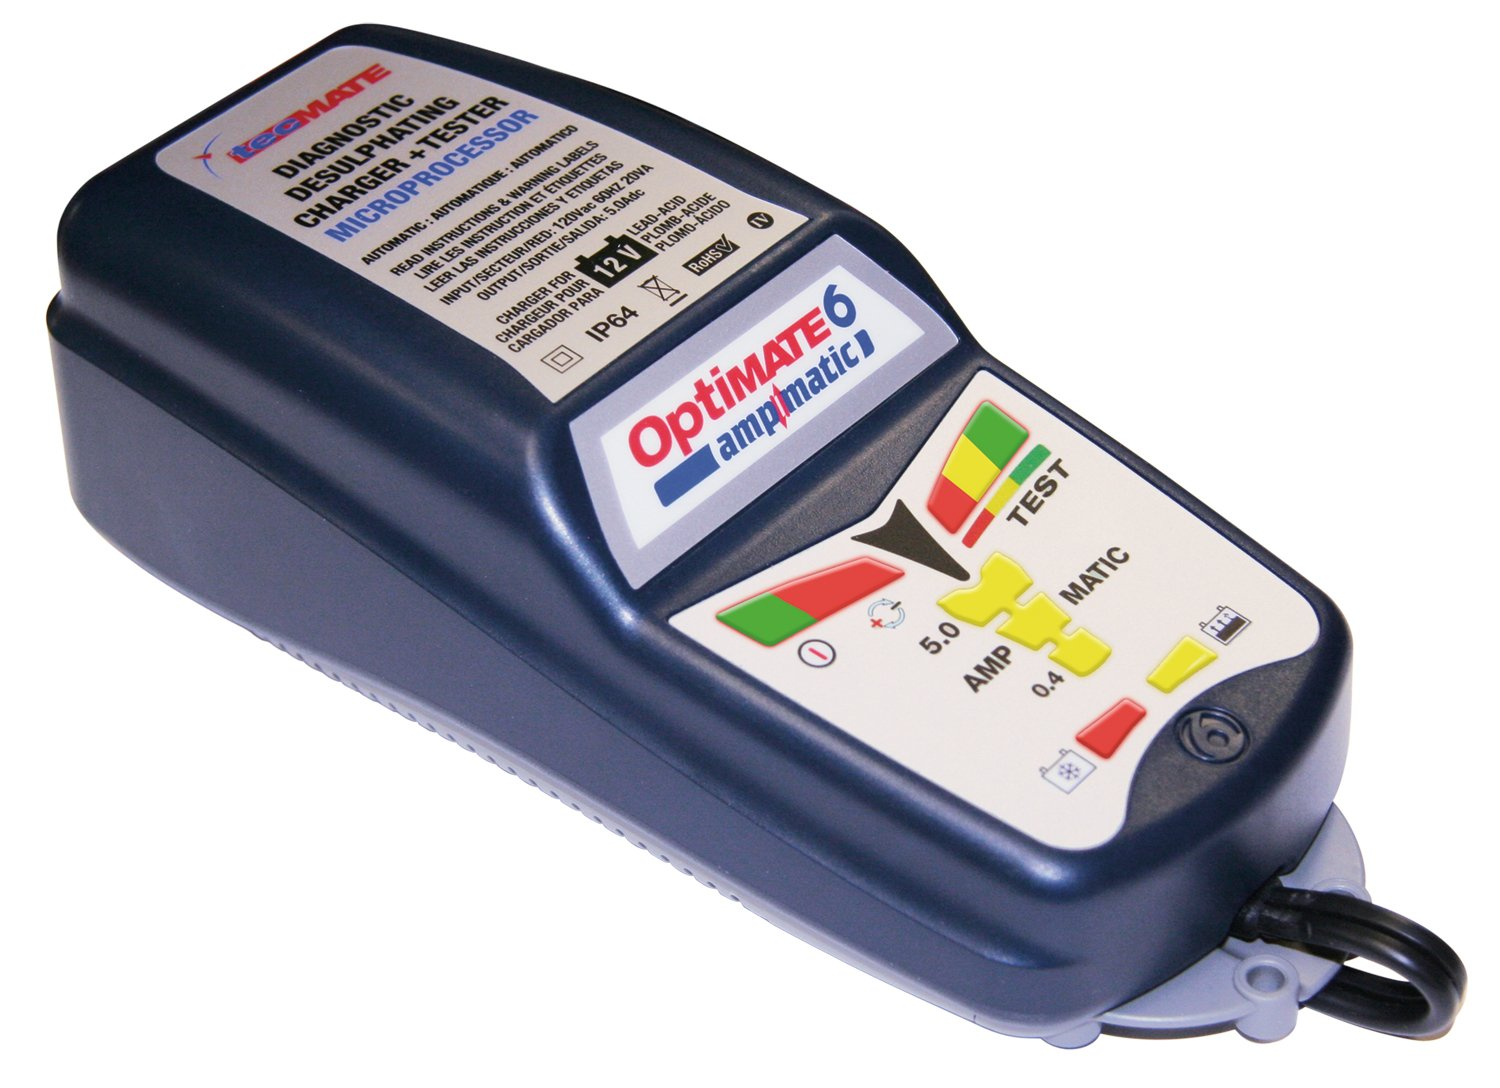 OptiMATE 6 Ampmatic, TM-181, 9-step 12V 5A Battery Saving charger-tester-maintainer by Tecmate